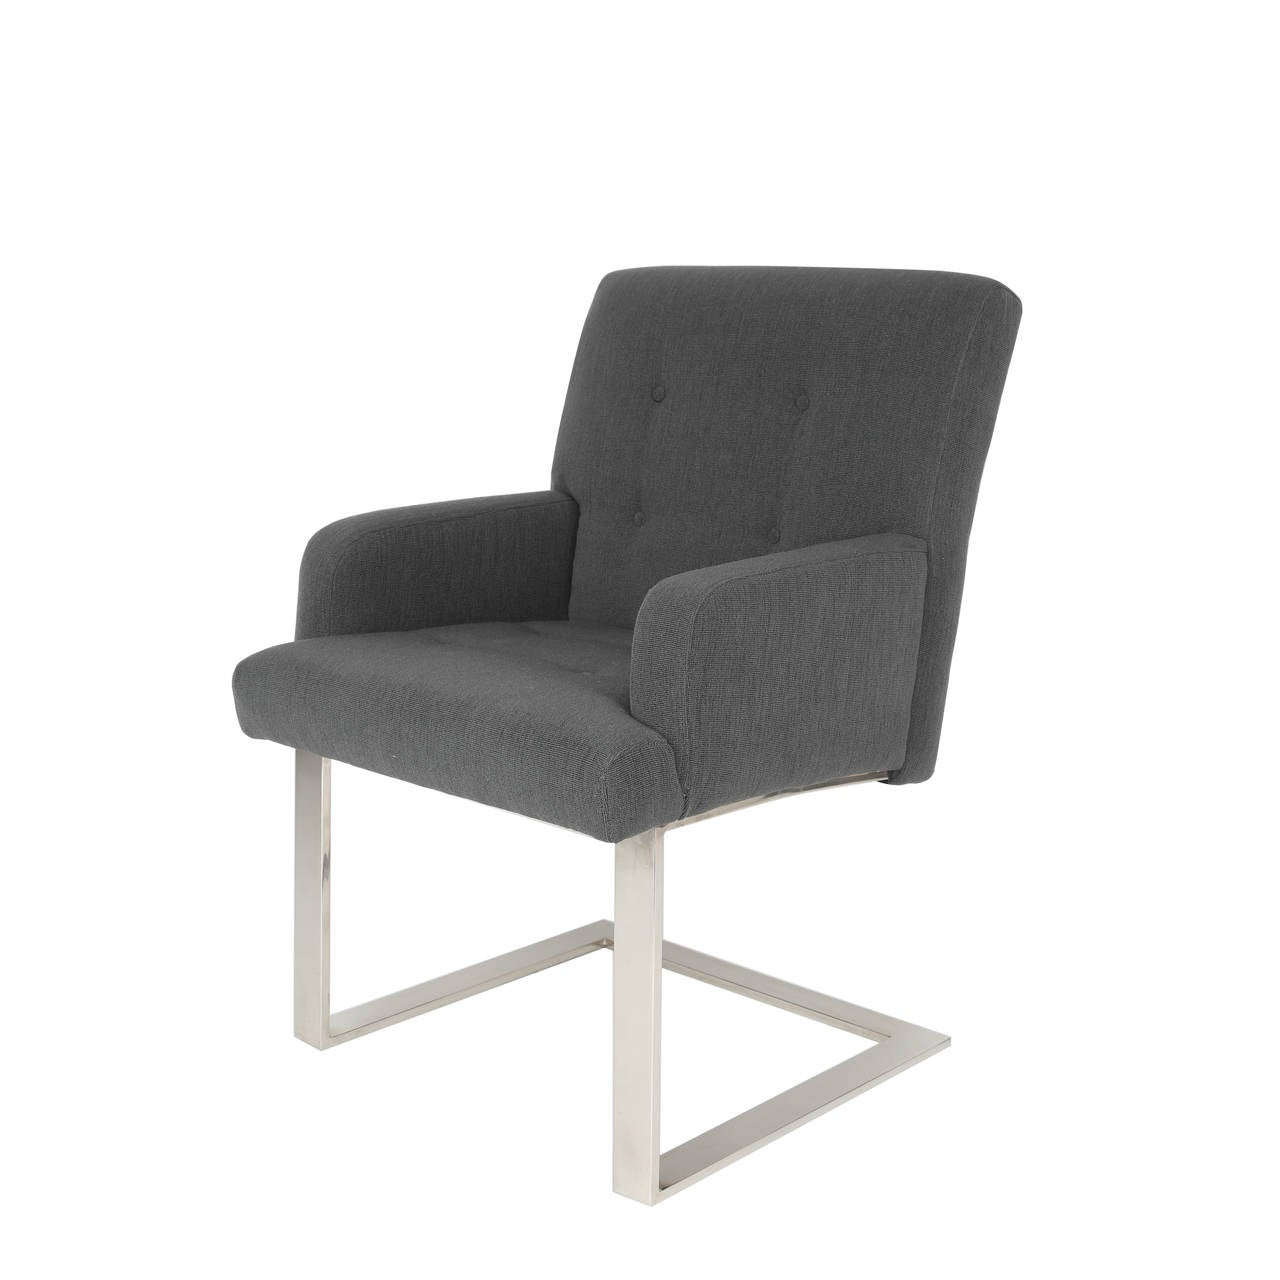 Set of six substantial dining chairs, two armchairs and four side chairs from Paul Evans' collection 77 for Directional. Chromed steel and new charcoal-gray wool upholstery. Dimensions: Armchairs: 33-1/2